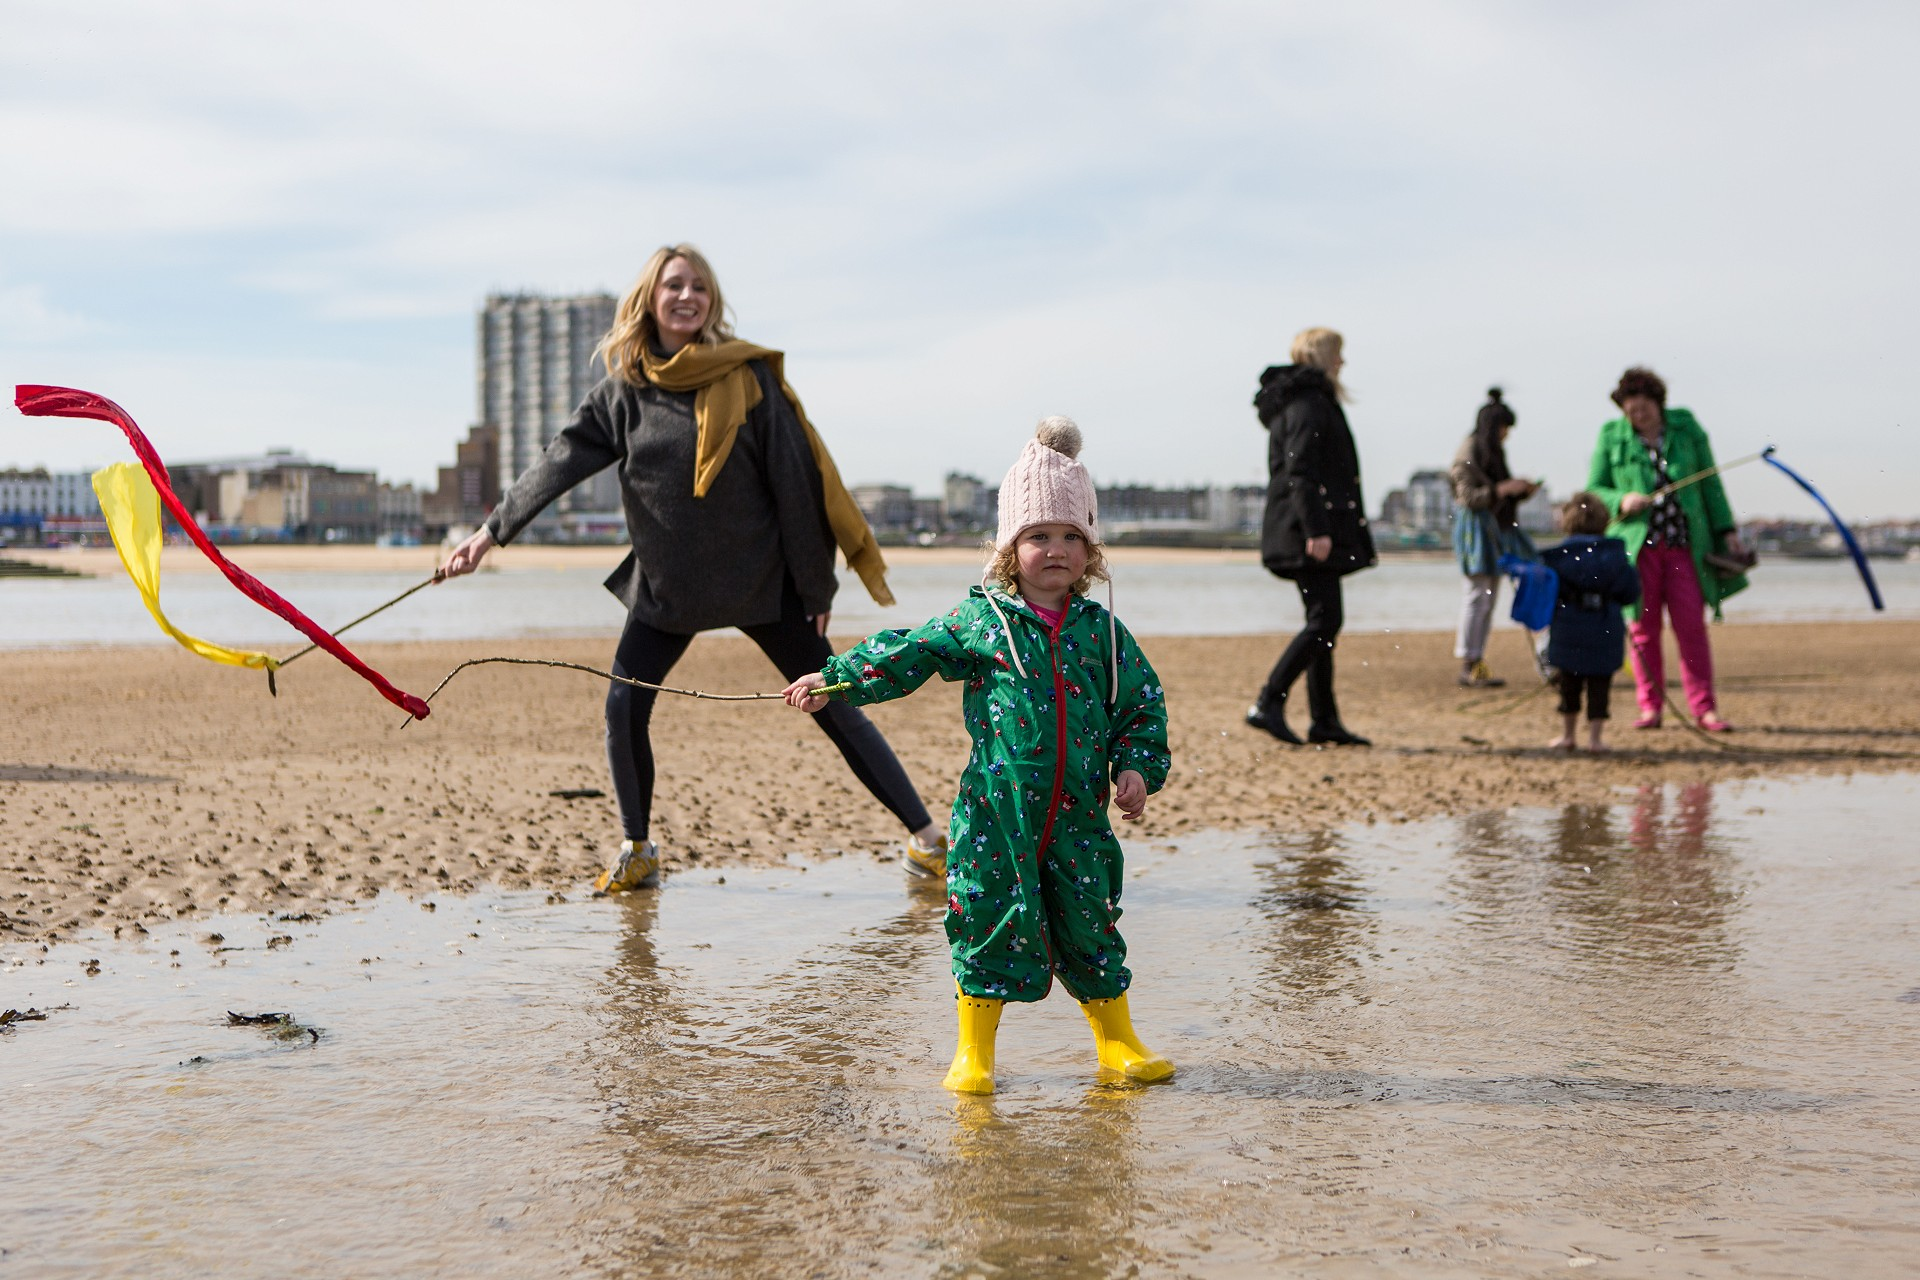 The Tide and Seek project taking place with children and families on Margate Beach